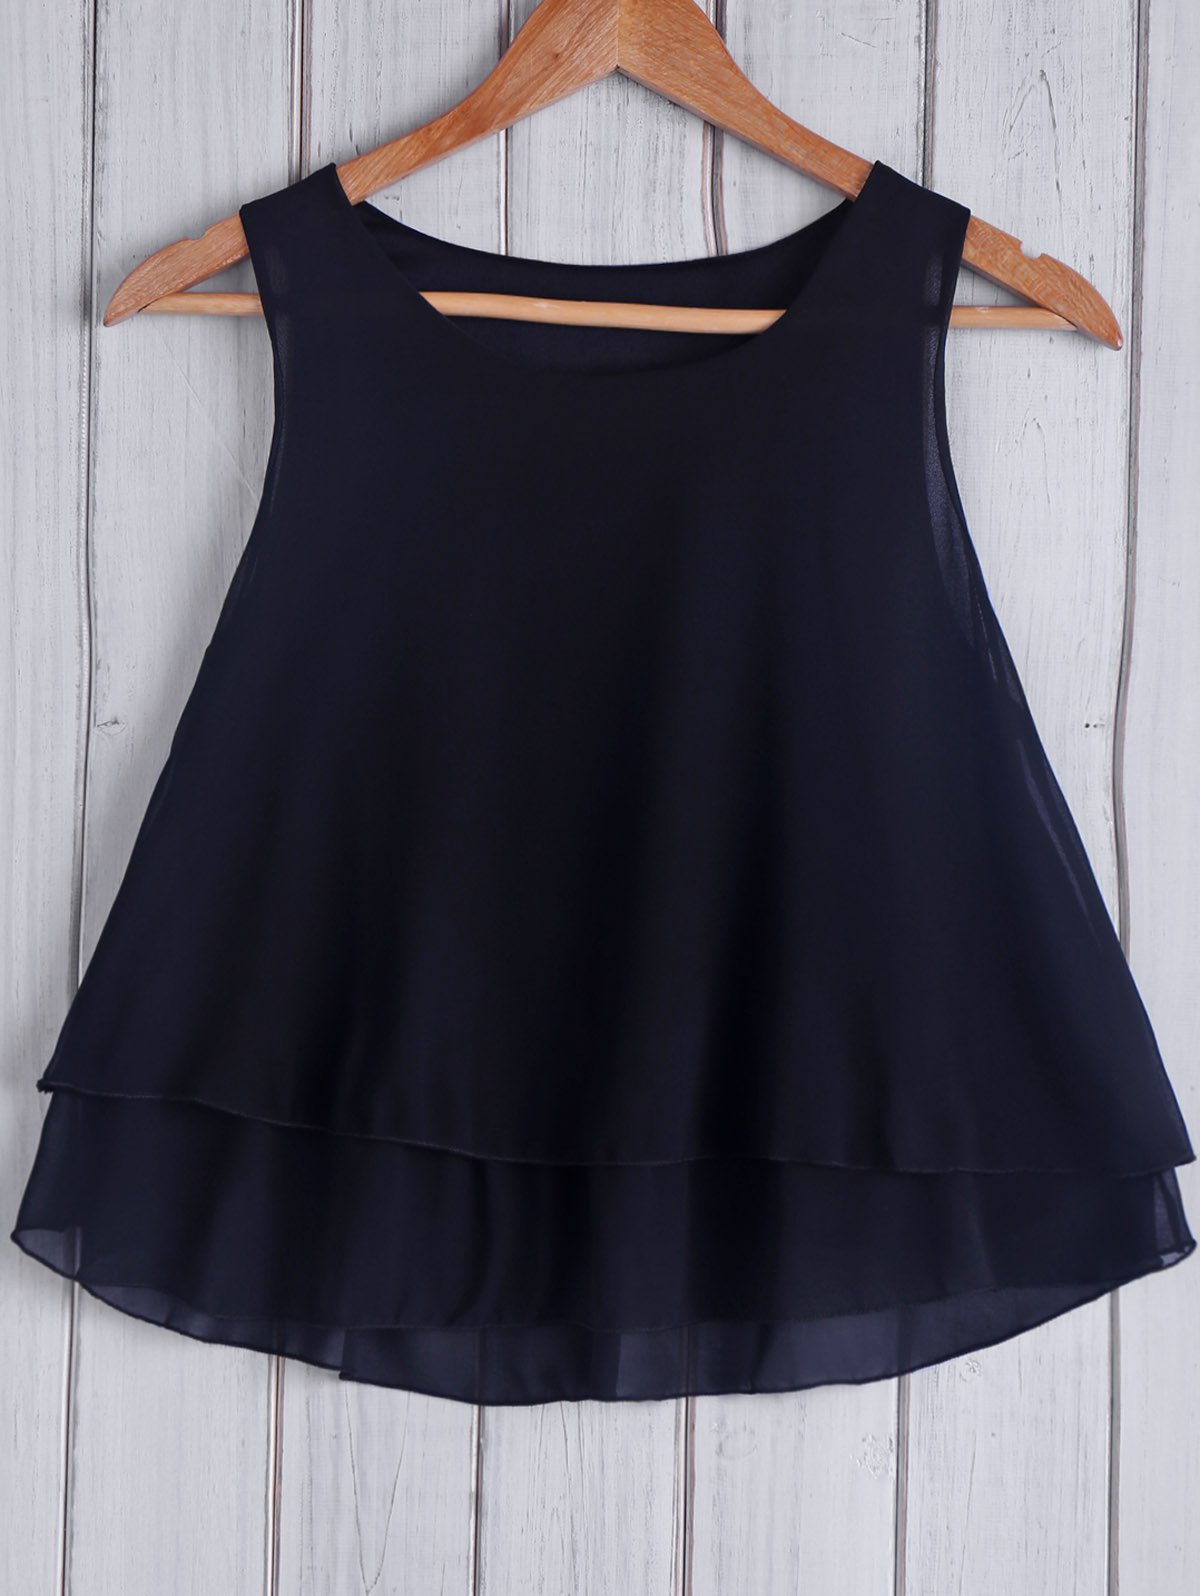 Fashionable Round Collar Loose-Fitting Solid Color Women's Tank Top - BLACK ONE SIZE(FIT SIZE XS TO M)